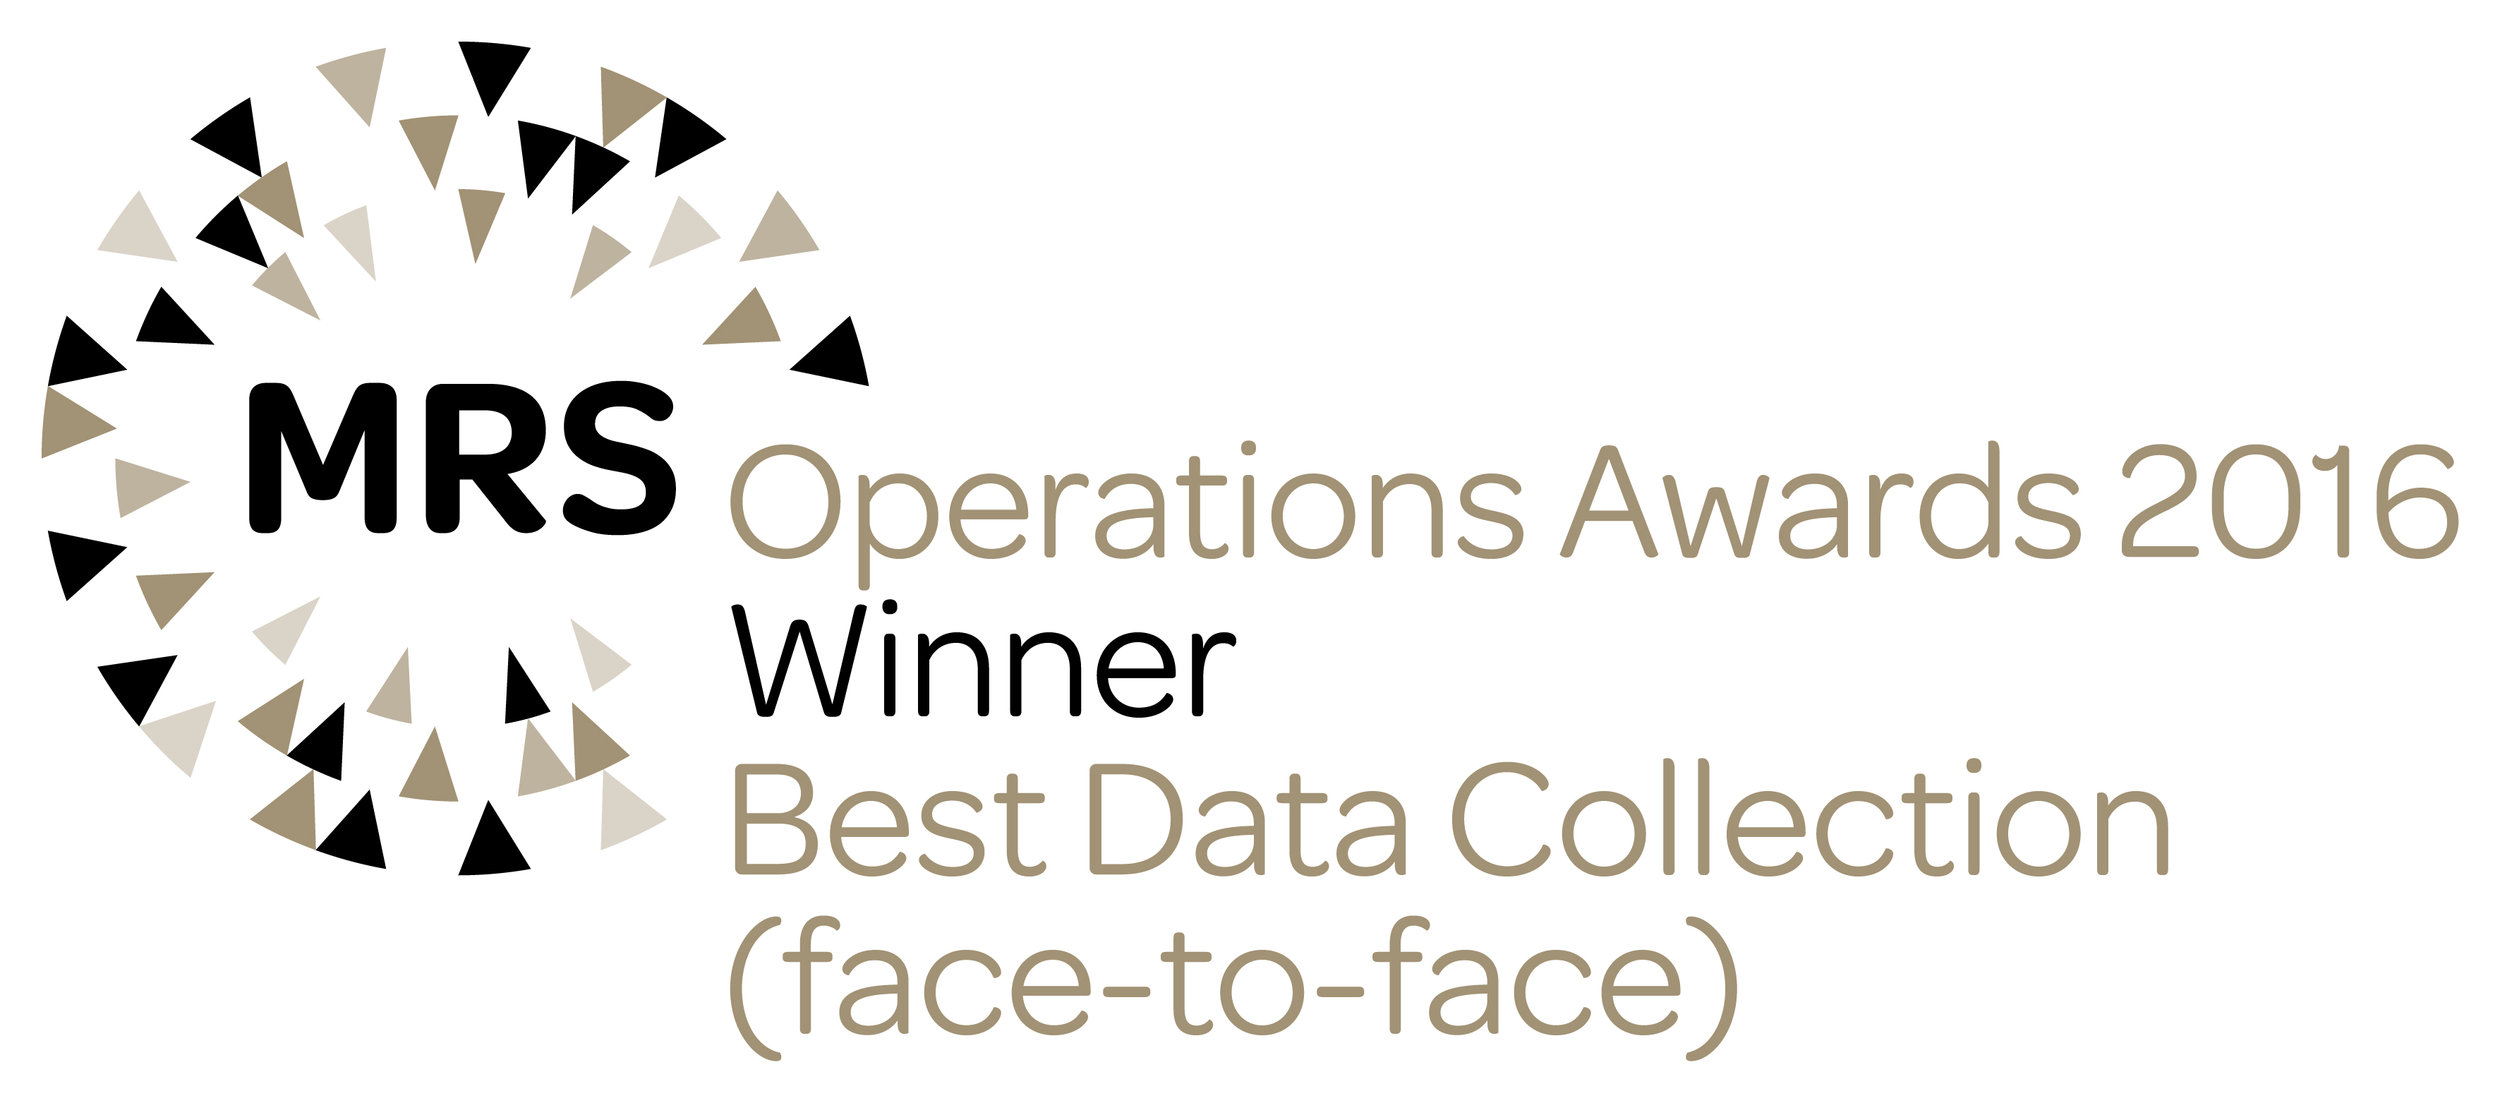 MRS_OP_AWARDS2016_BESTDATACOL_FTF_WIN.jpg